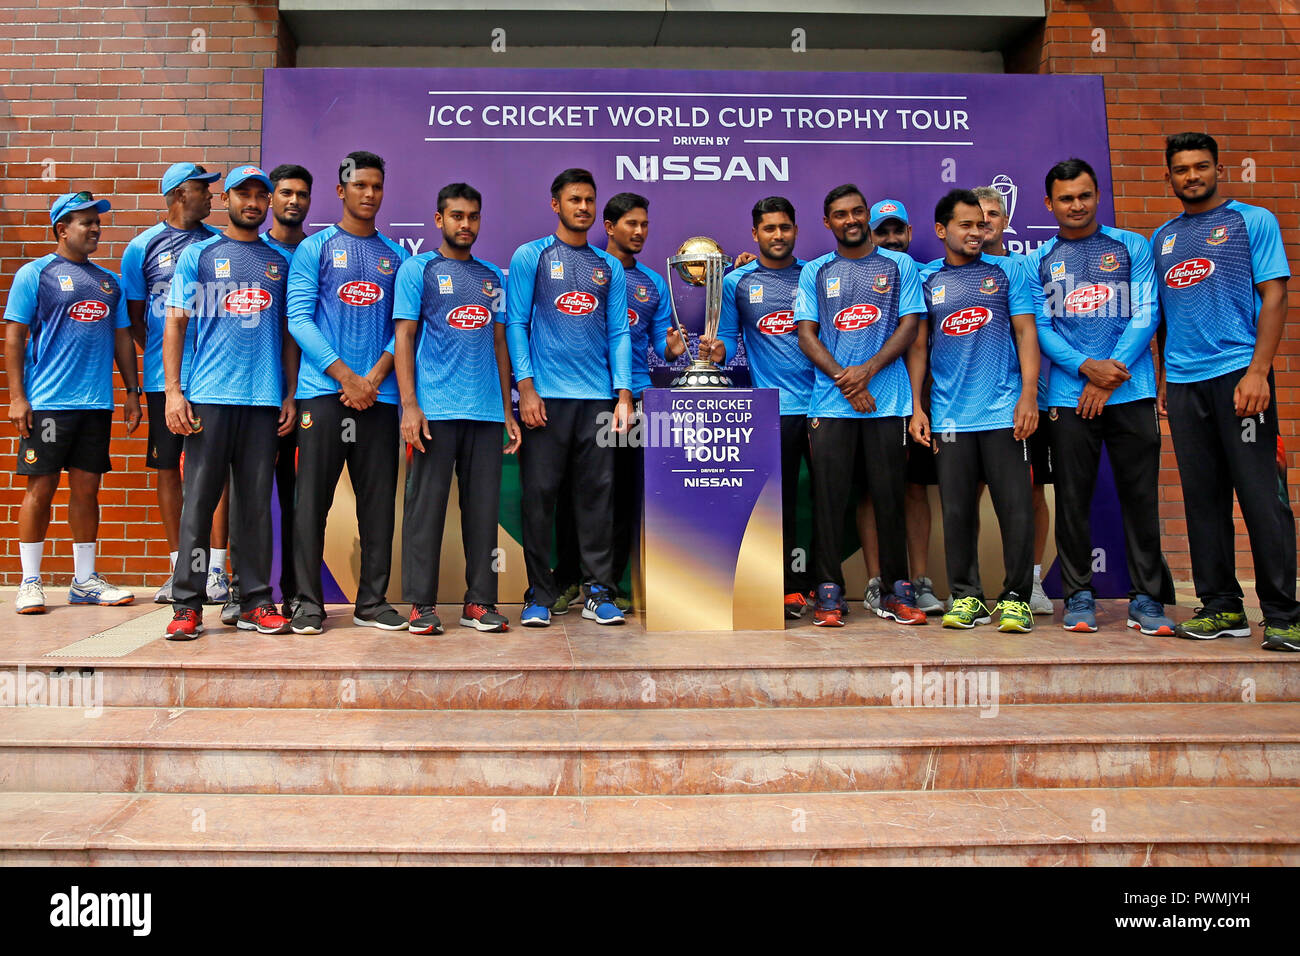 Bangladesh Cricket Team Players possesses for photographs along the ICC Cricket World Cup Trophy at BCB premises in Mirpur, during its tour to Banglad - Stock Image